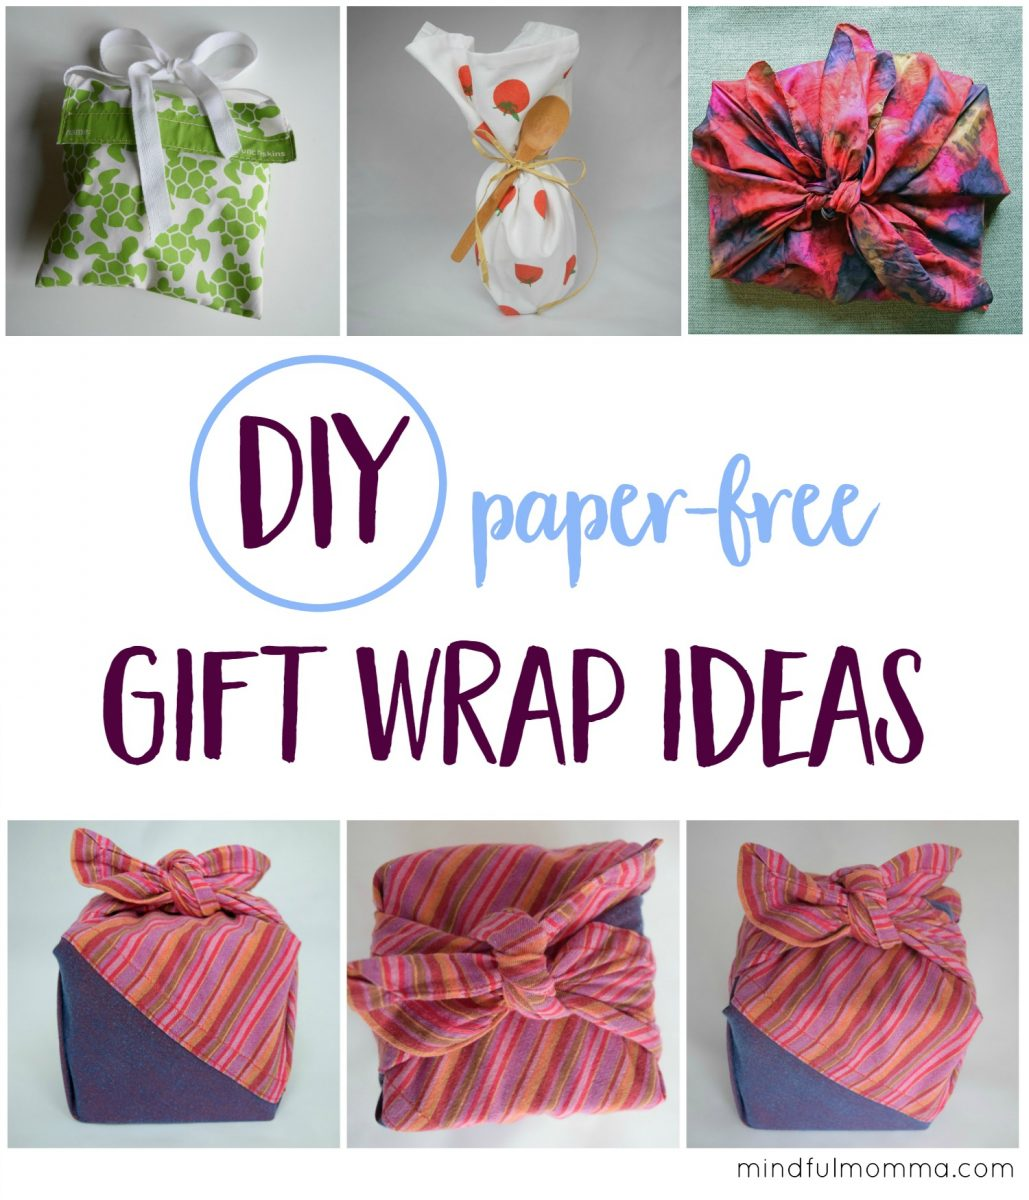 A modern take on traditional holiday gift wrapping, these gift ideas are made using glittery adhesive tape, a silver pen, and baker's twine. Get the tutorial at Gold Standard Workshop.